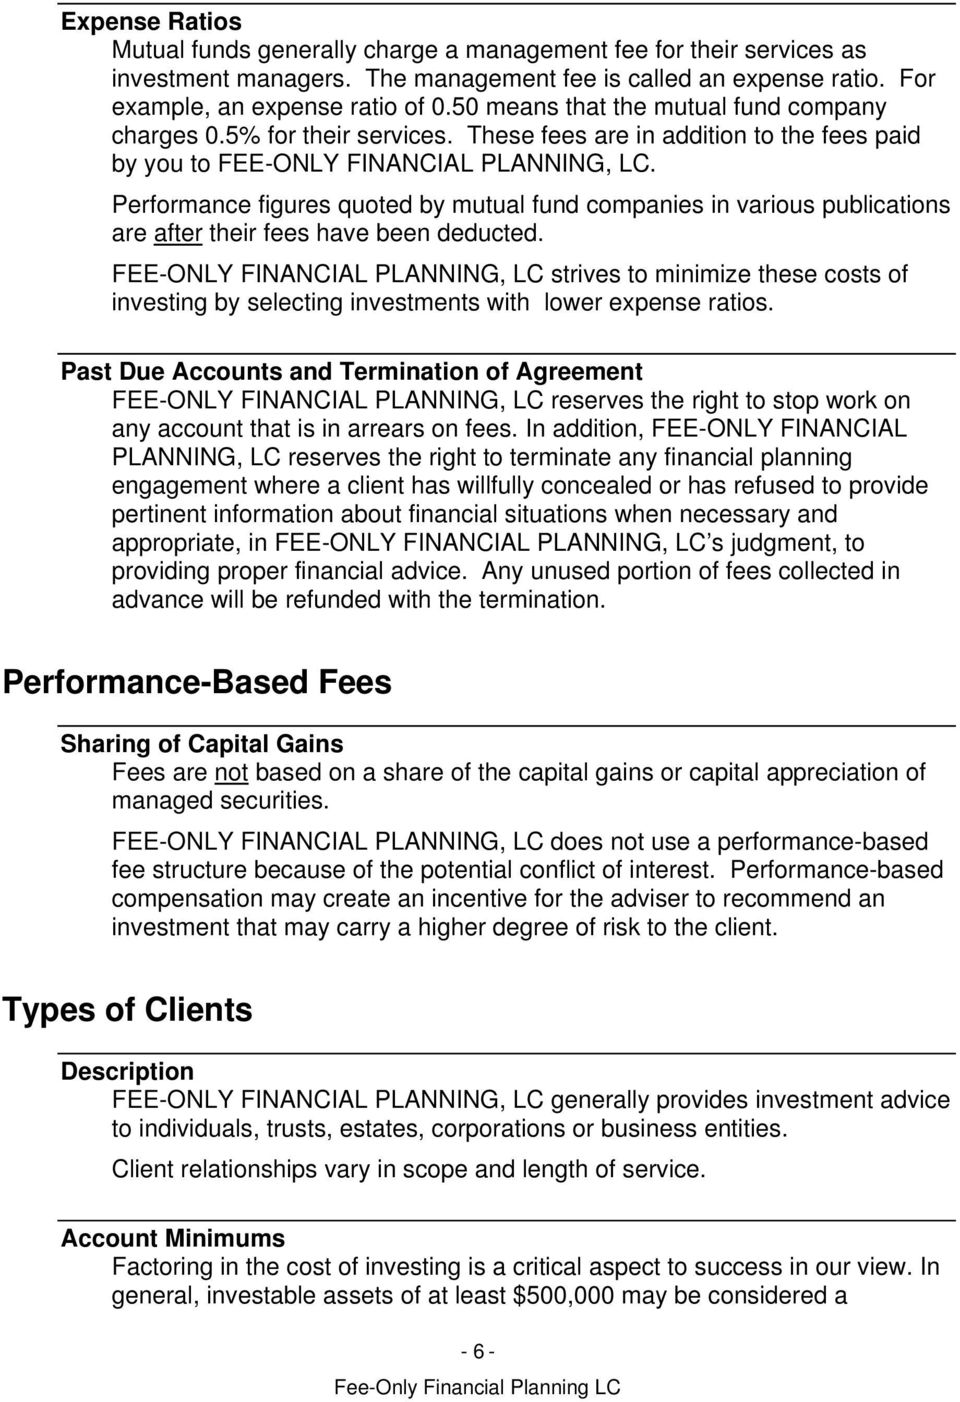 Performance figures quoted by mutual fund companies in various publications are after their fees have been deducted.